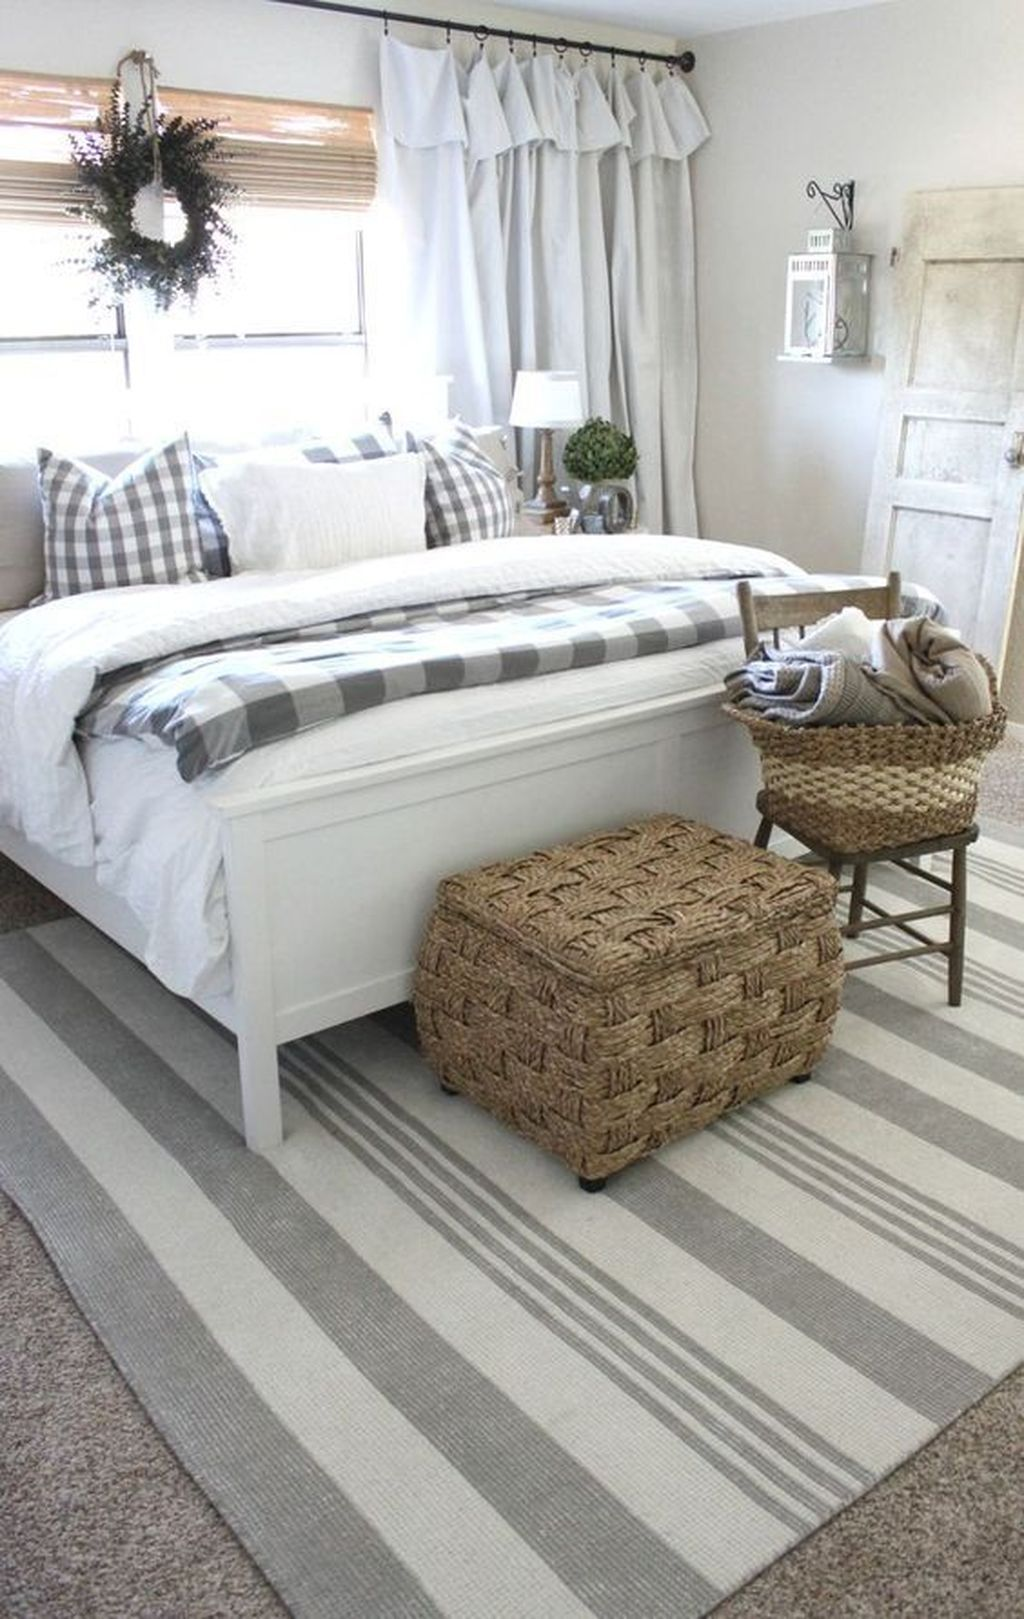 88 Rustic Decor Bedroom Farmhouse Style Ideas | Schlafzimmer ...